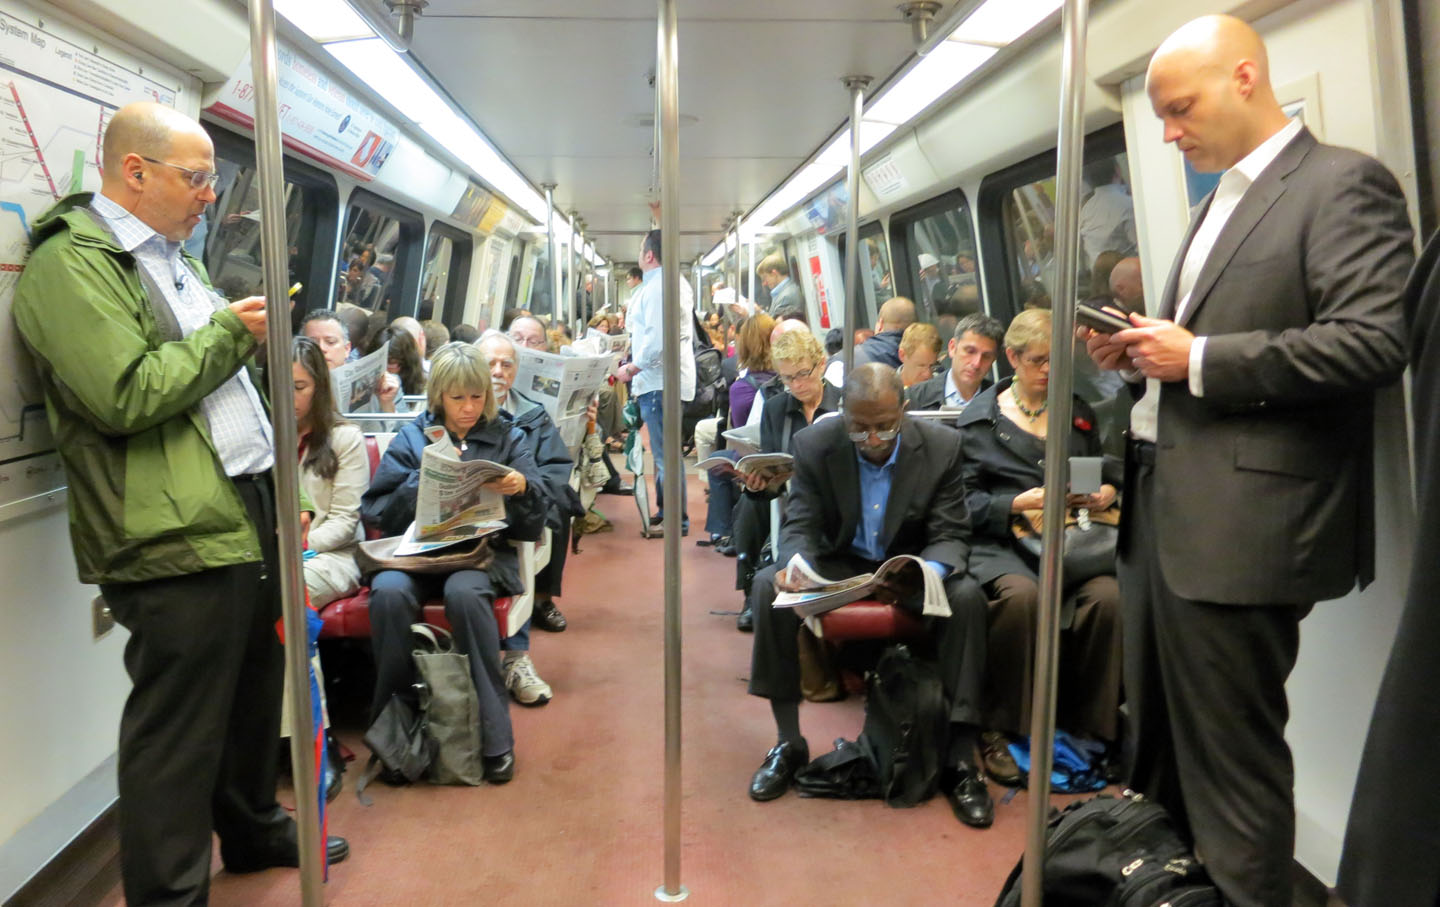 Commuters on the DC Metro.